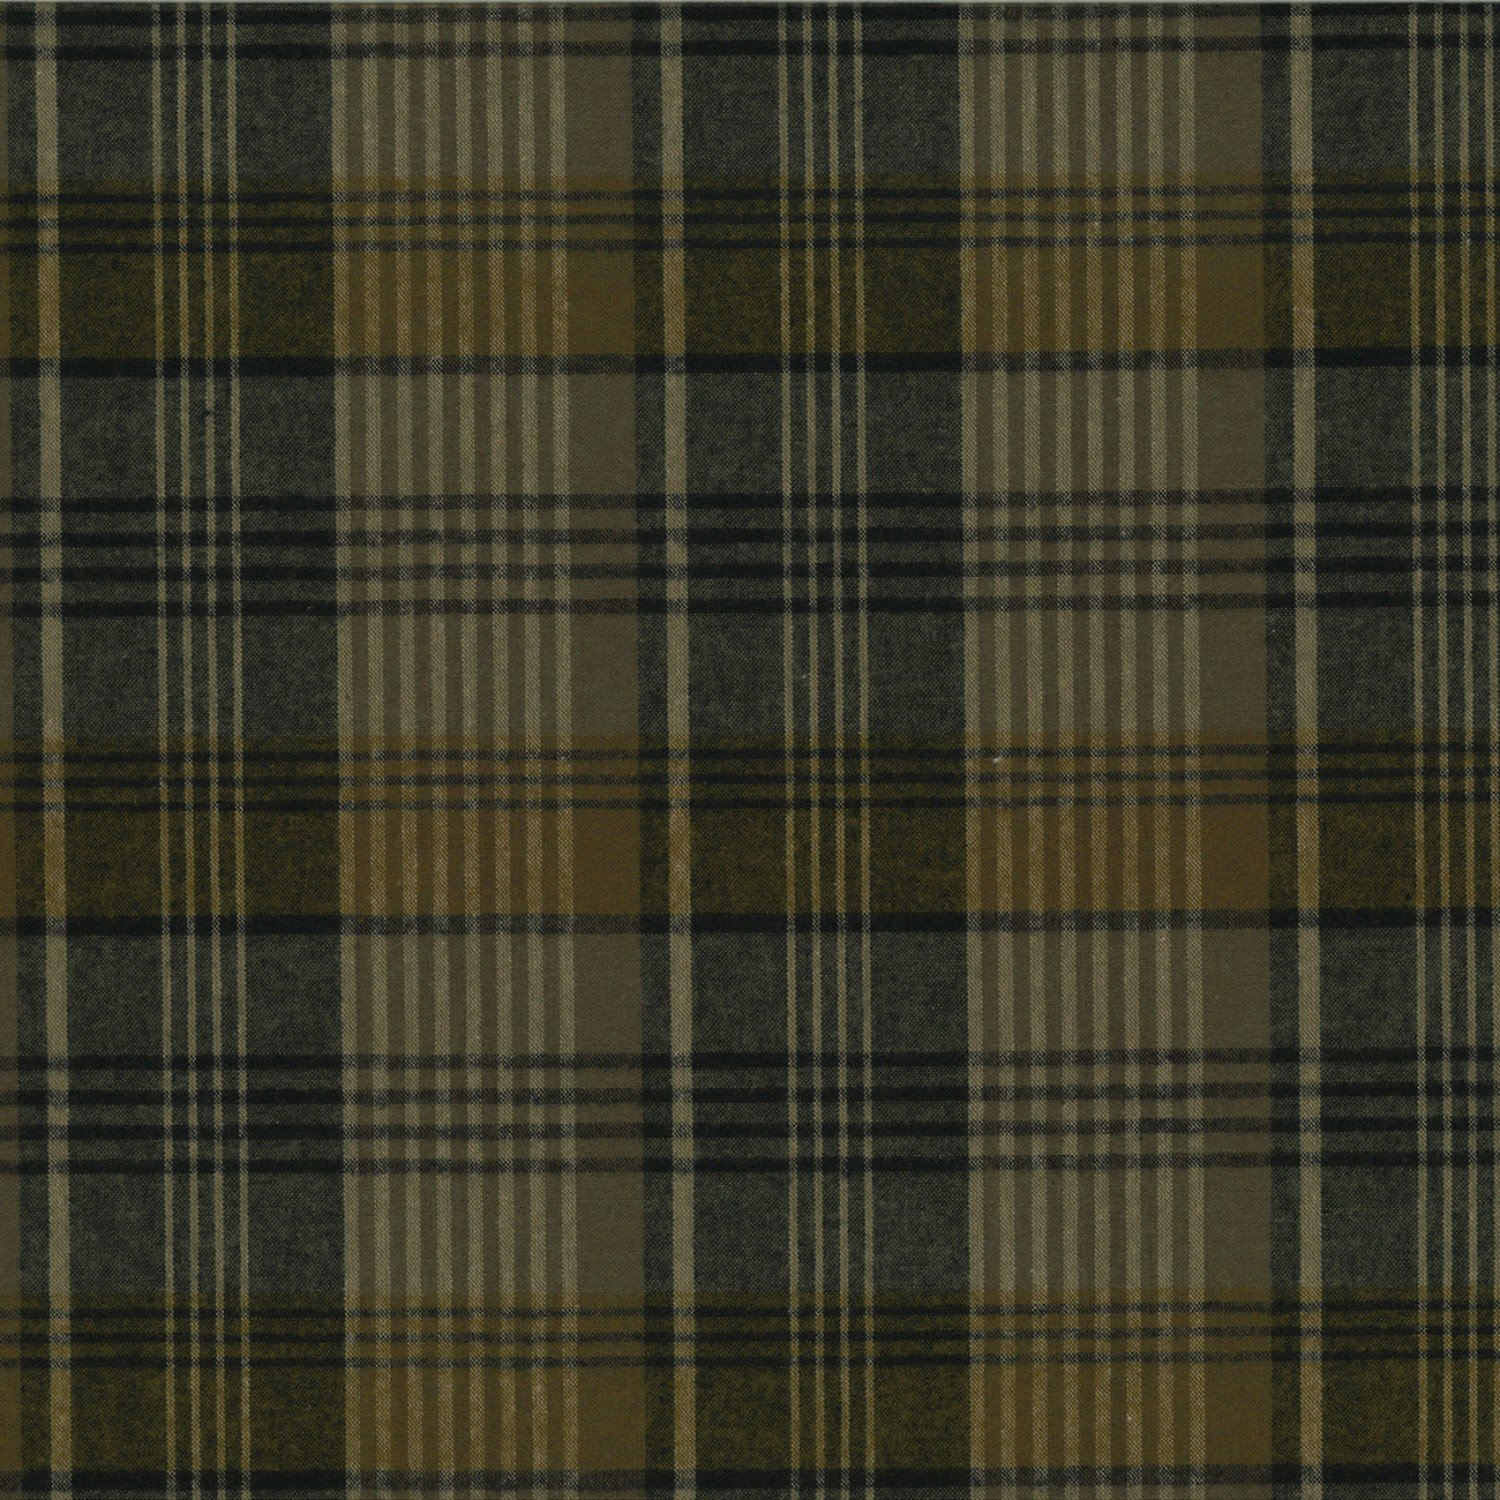 Centenary Collection - Brushed Cotton Plaid Taupe/Gold